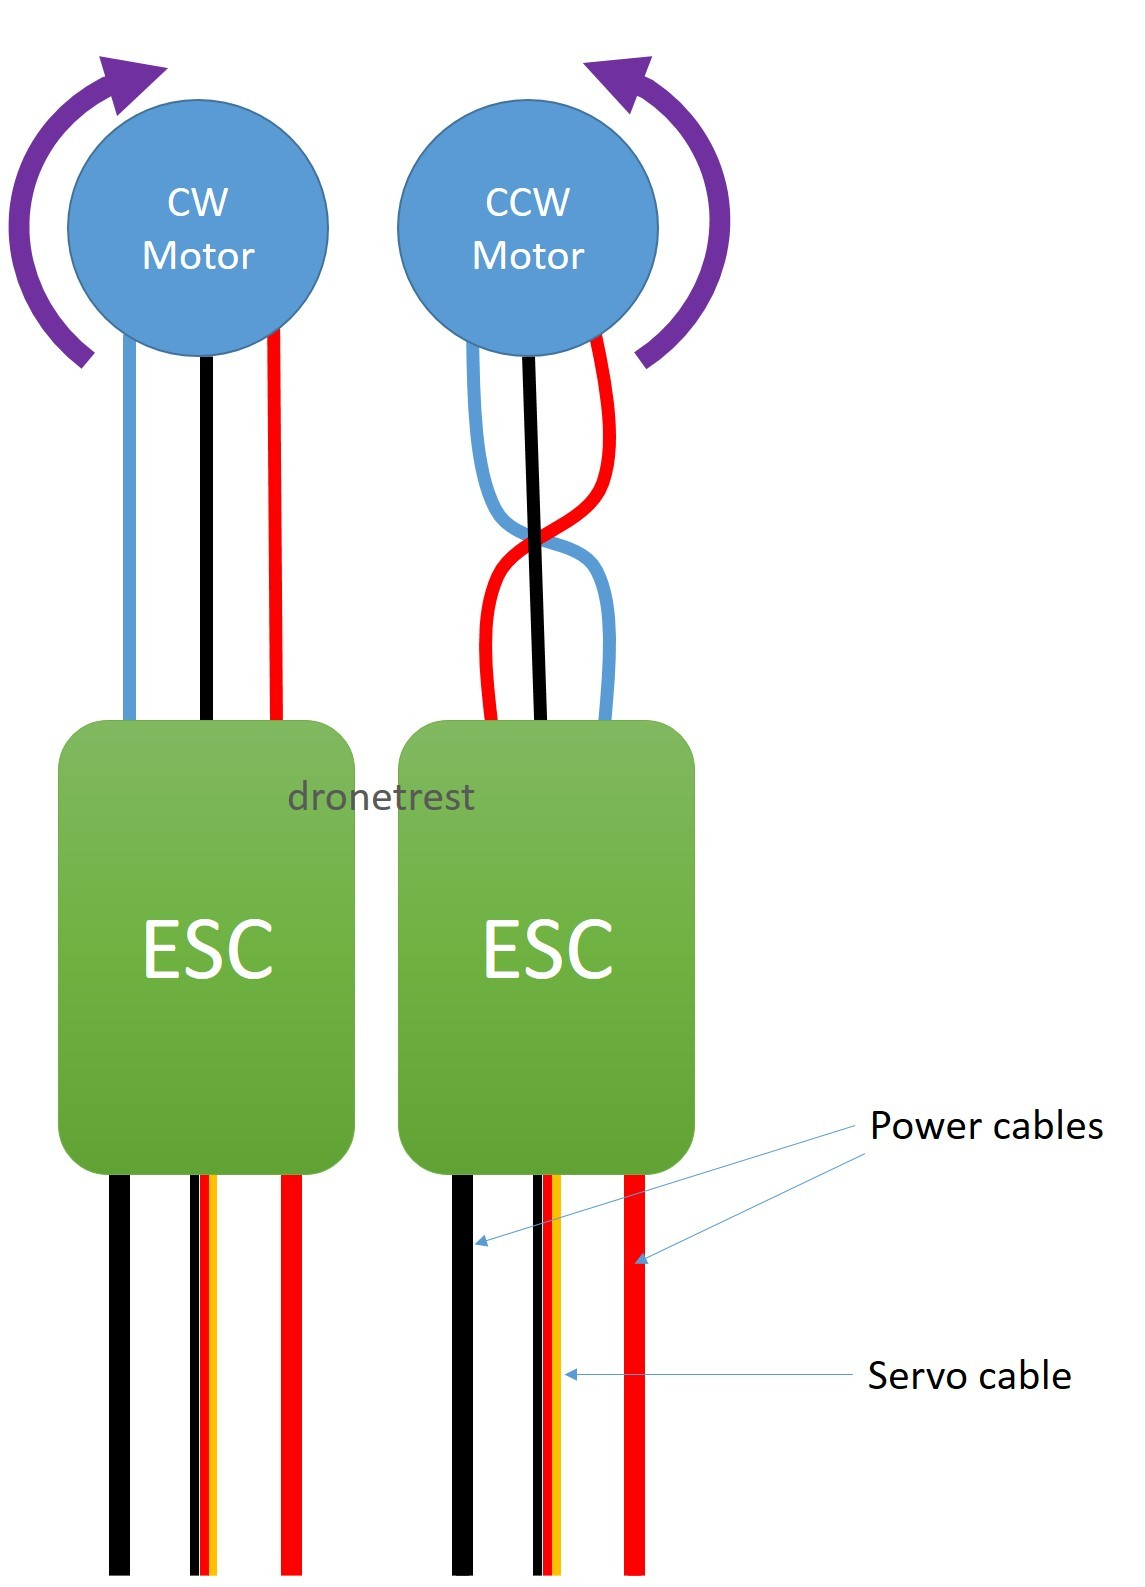 motor to esc guide.jpg1145x1587 104 KB. You can see the correct connection  in the diagram ...